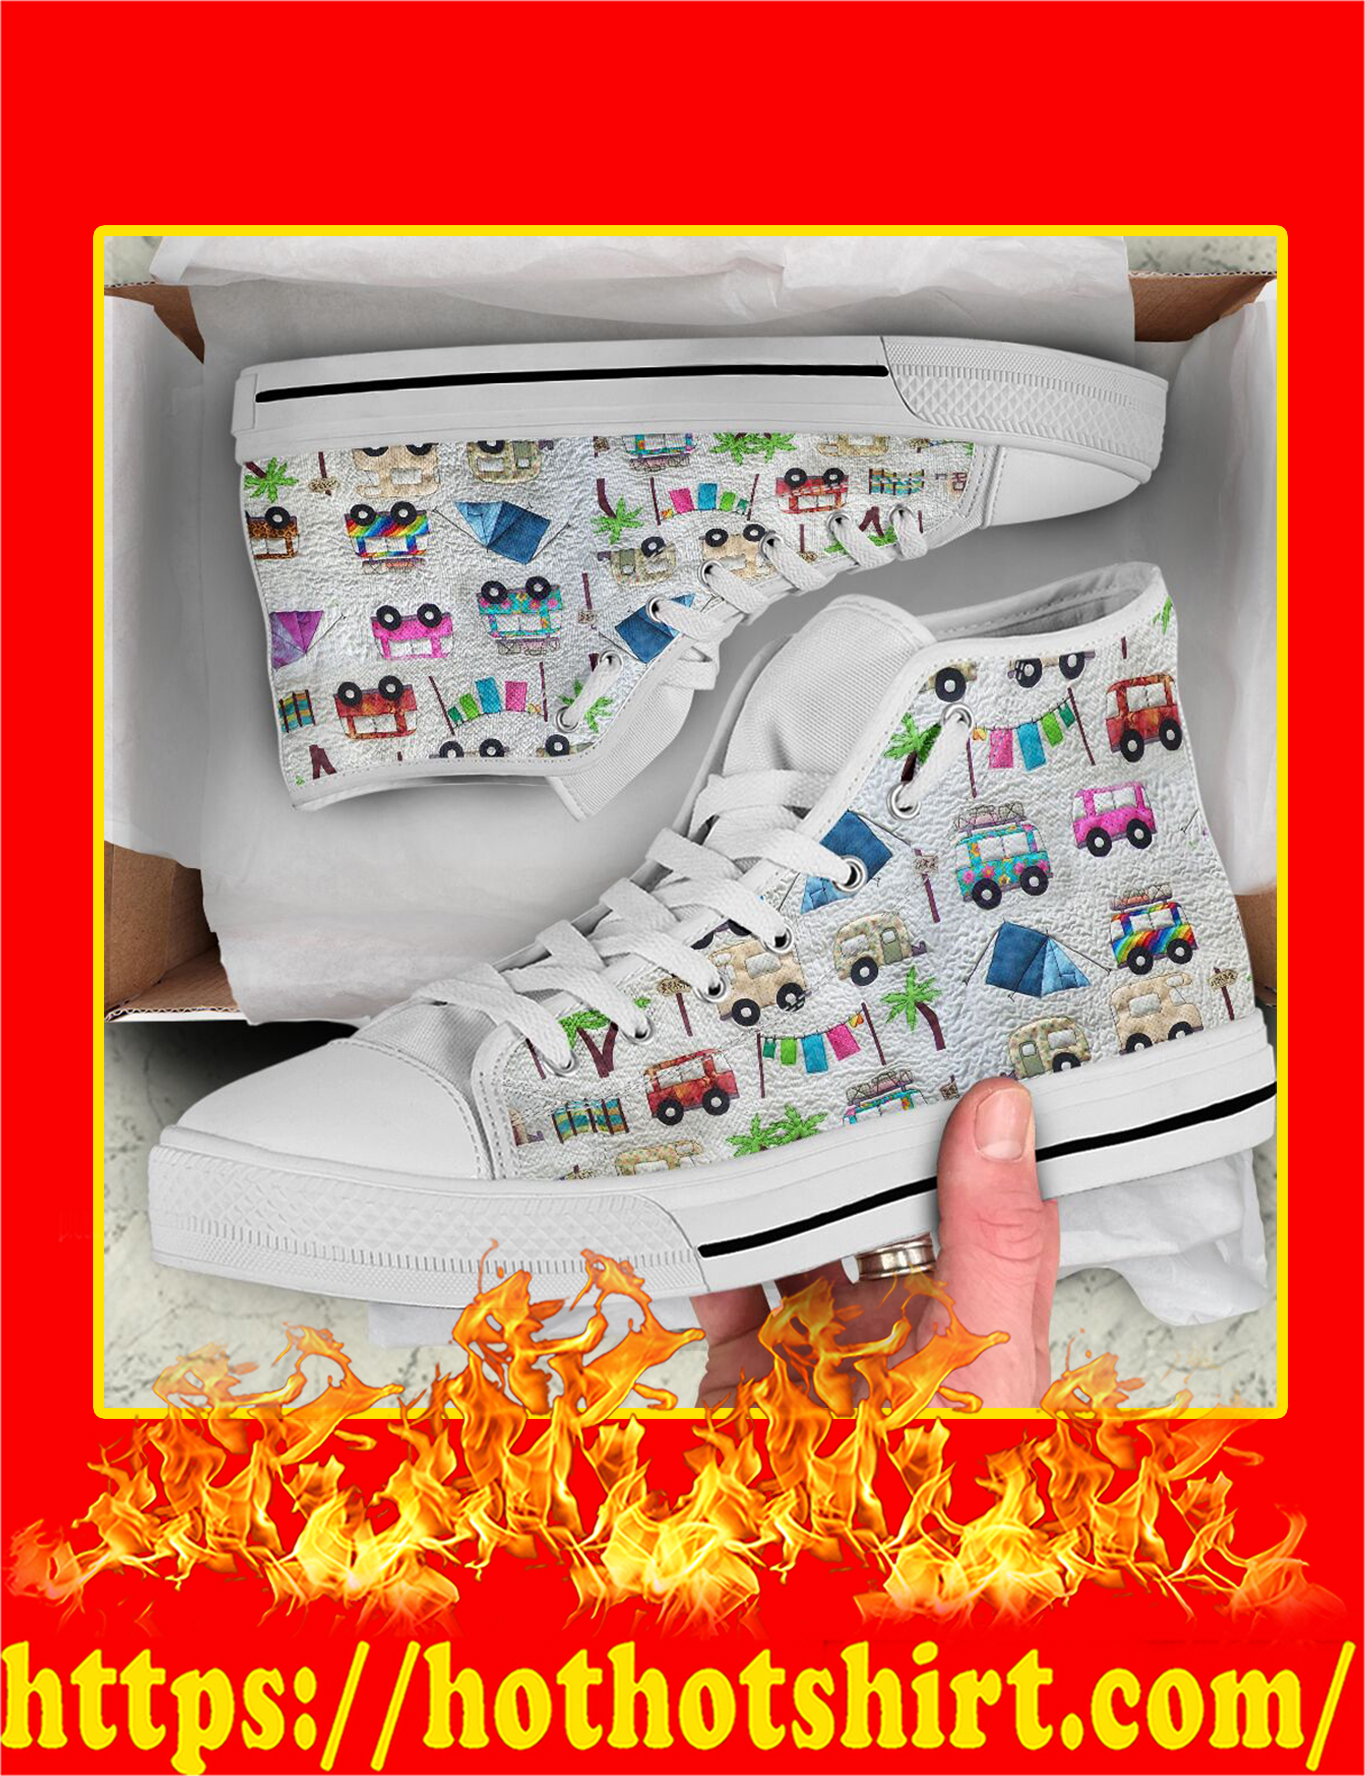 Camper High Top Shoes - Pic 1